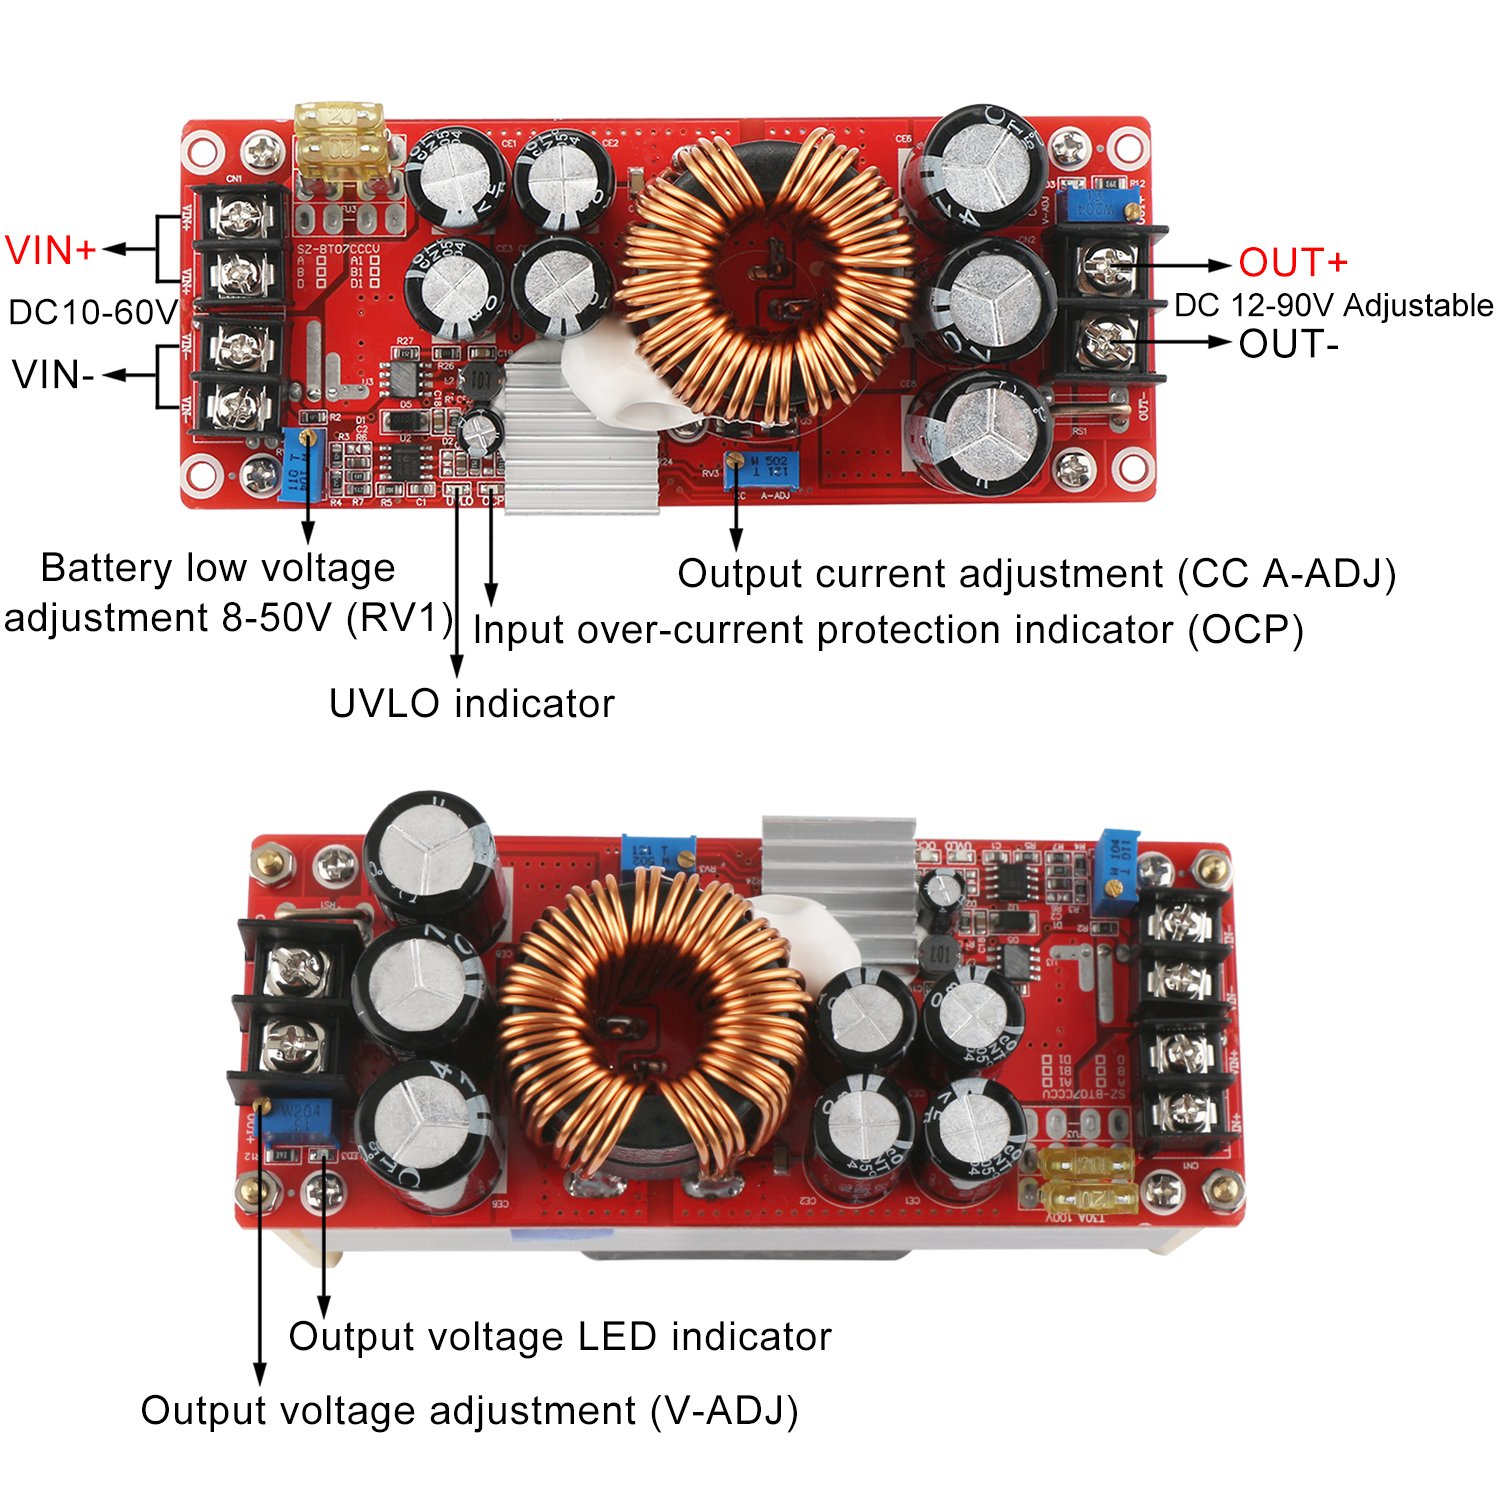 Boost Voltage Converter, DROK 1500W Voltage Regulator Booster DC 10V-60V 12V Step Up to DC 12V-90V 24V 30A Power Supply Module High Power Volt Transformer Circuit Board with Cooling Fan by DROK (Image #2)